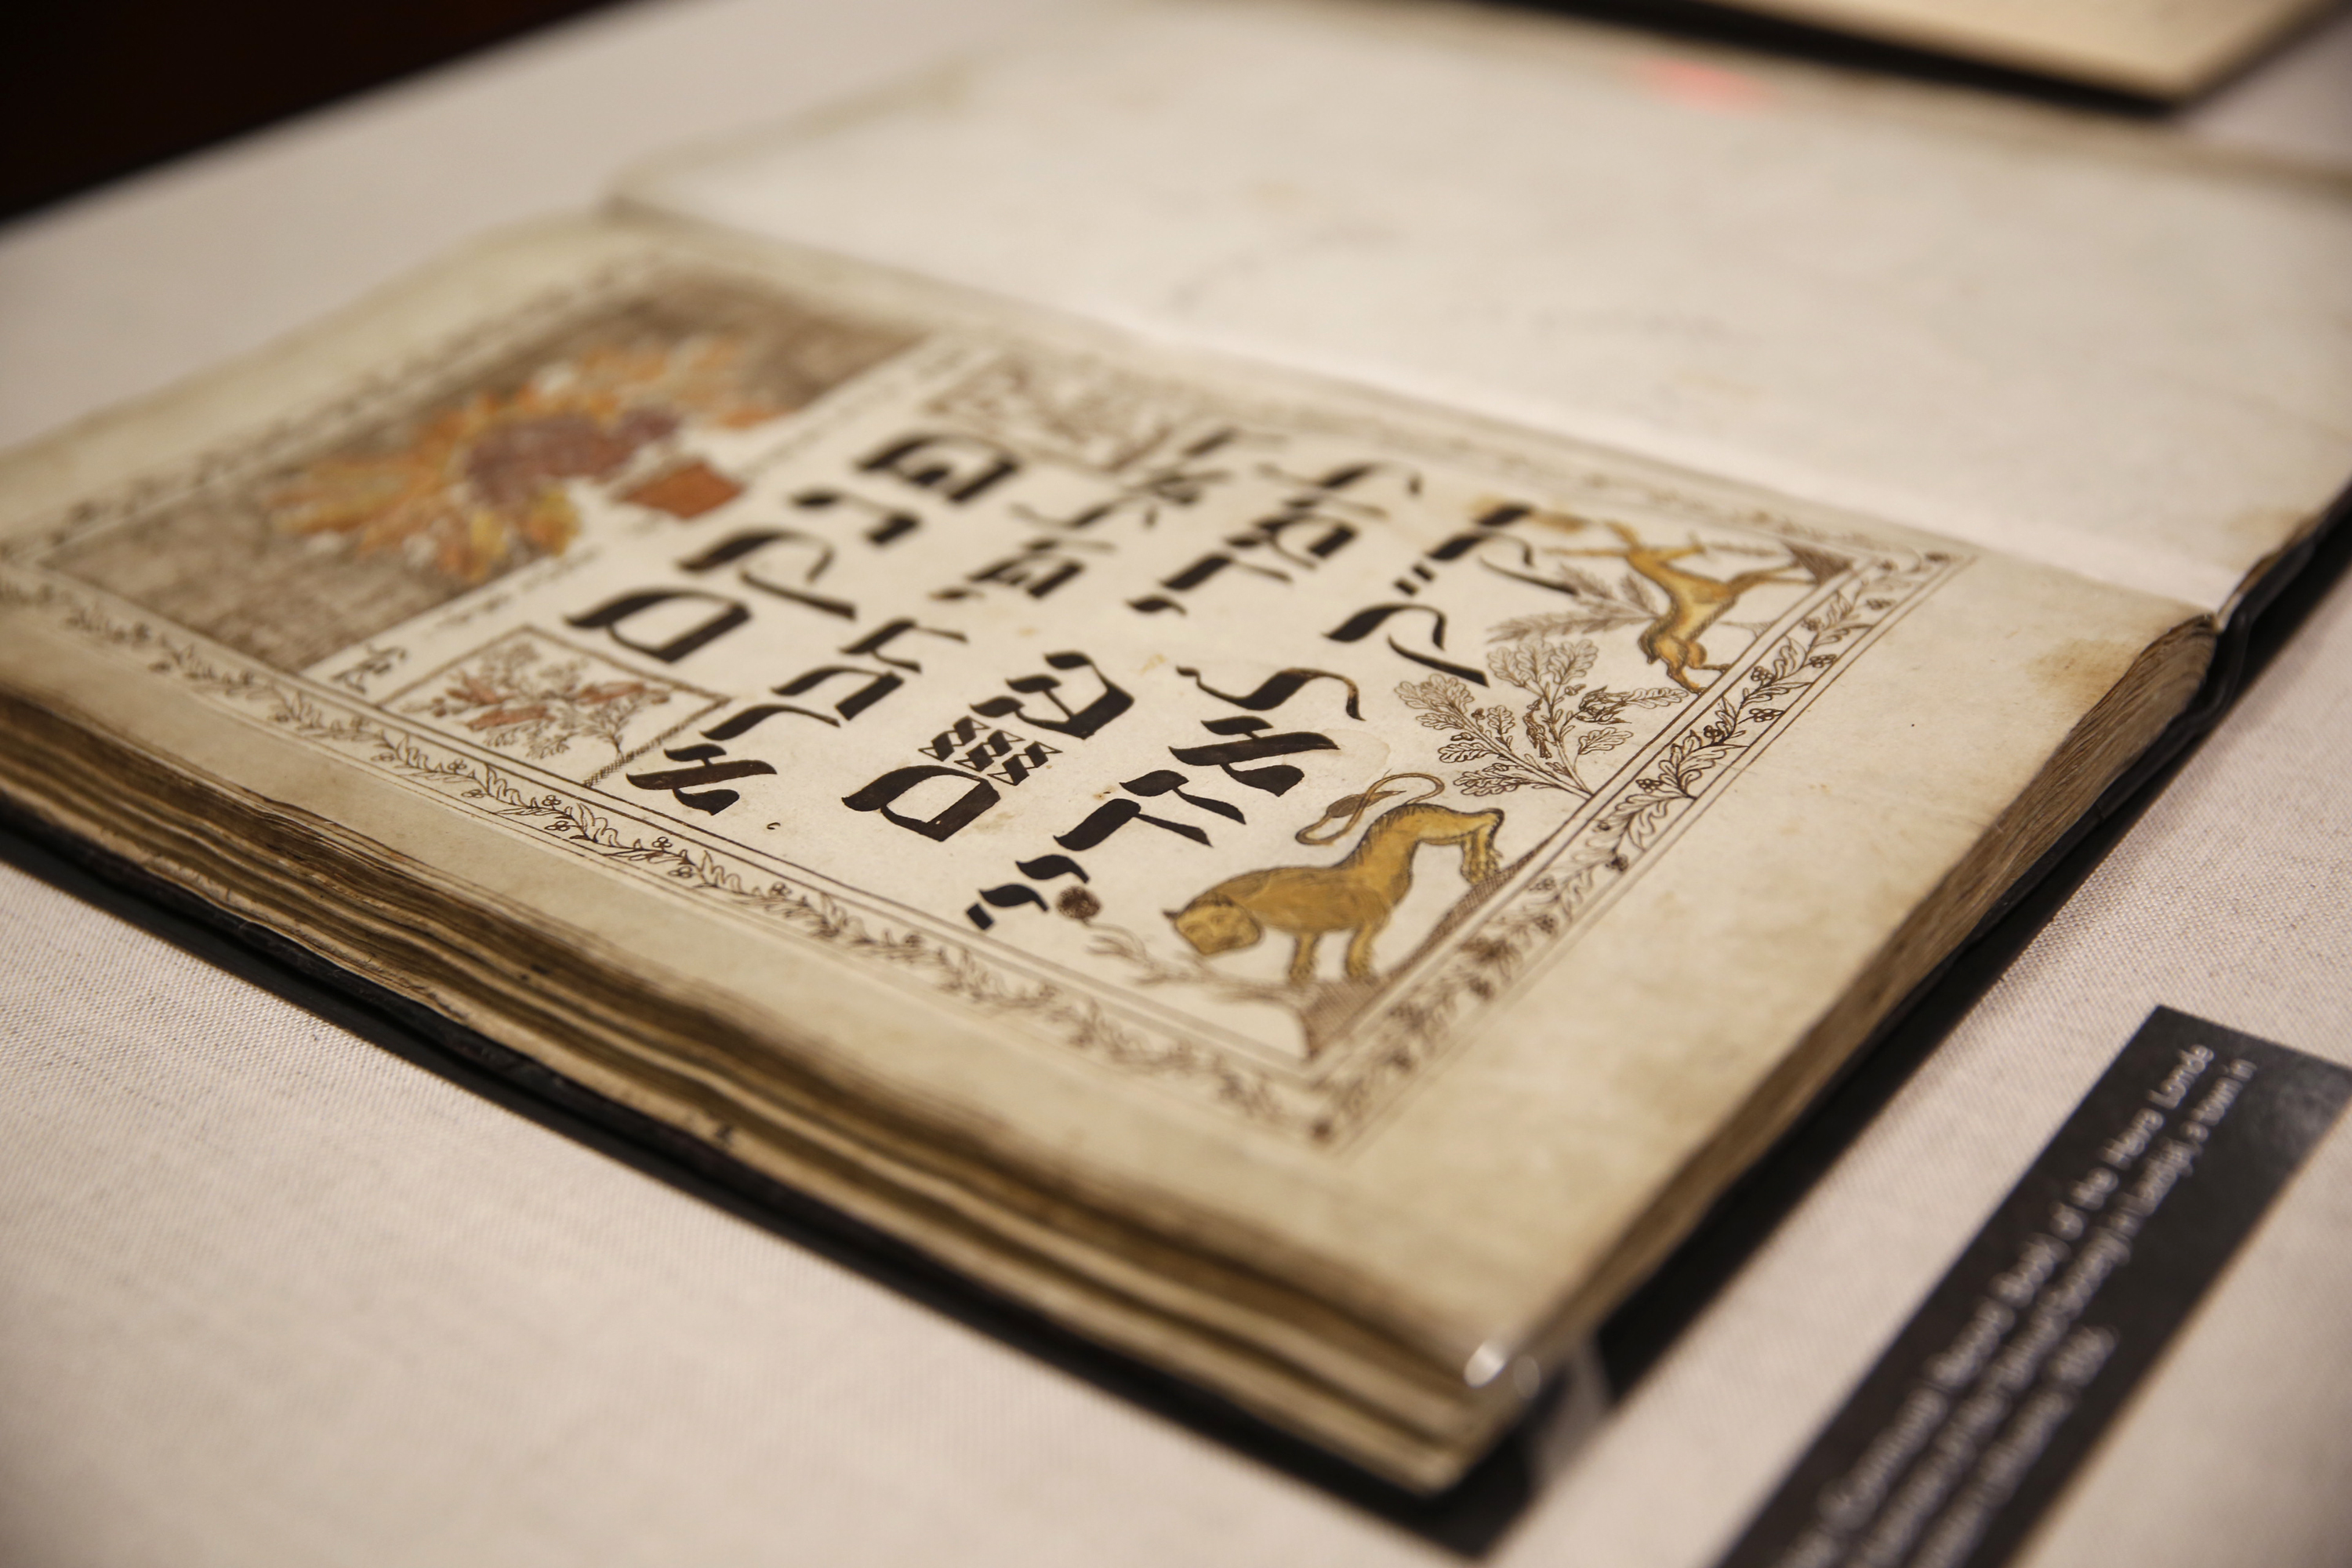 YIVO unveils lost Jewish documents thought to have been destroyed during the Holocaust (THOS ROBINSON / GETTY IMAGES NORTH AMERICA / AFP)